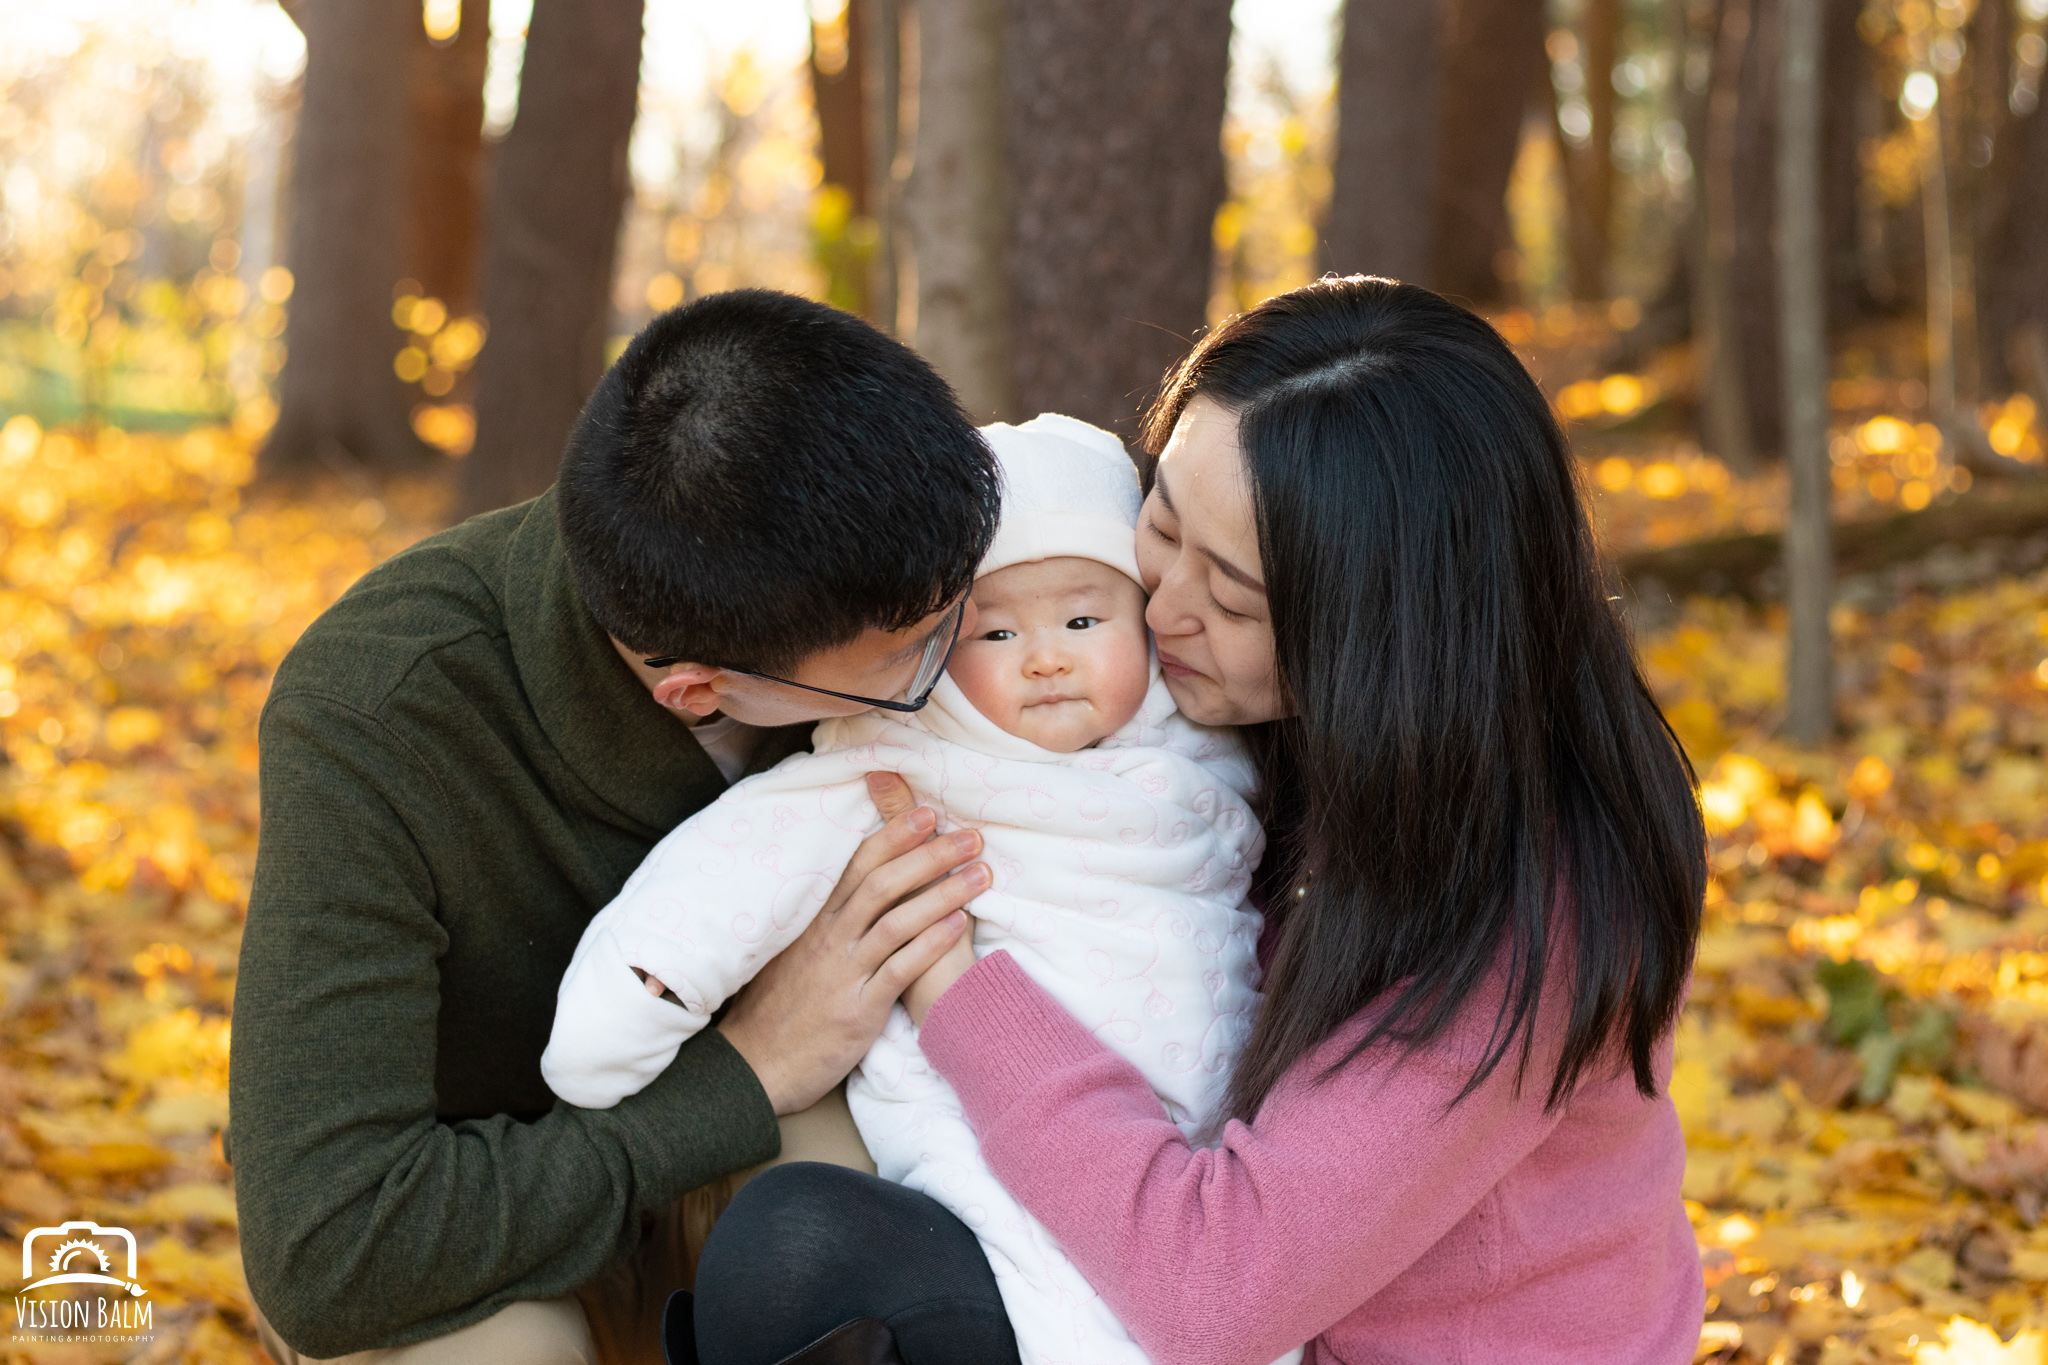 Family fall portrait of young couple with their baby in the park kissing photographed by Vision Balm in Charleston, SC.